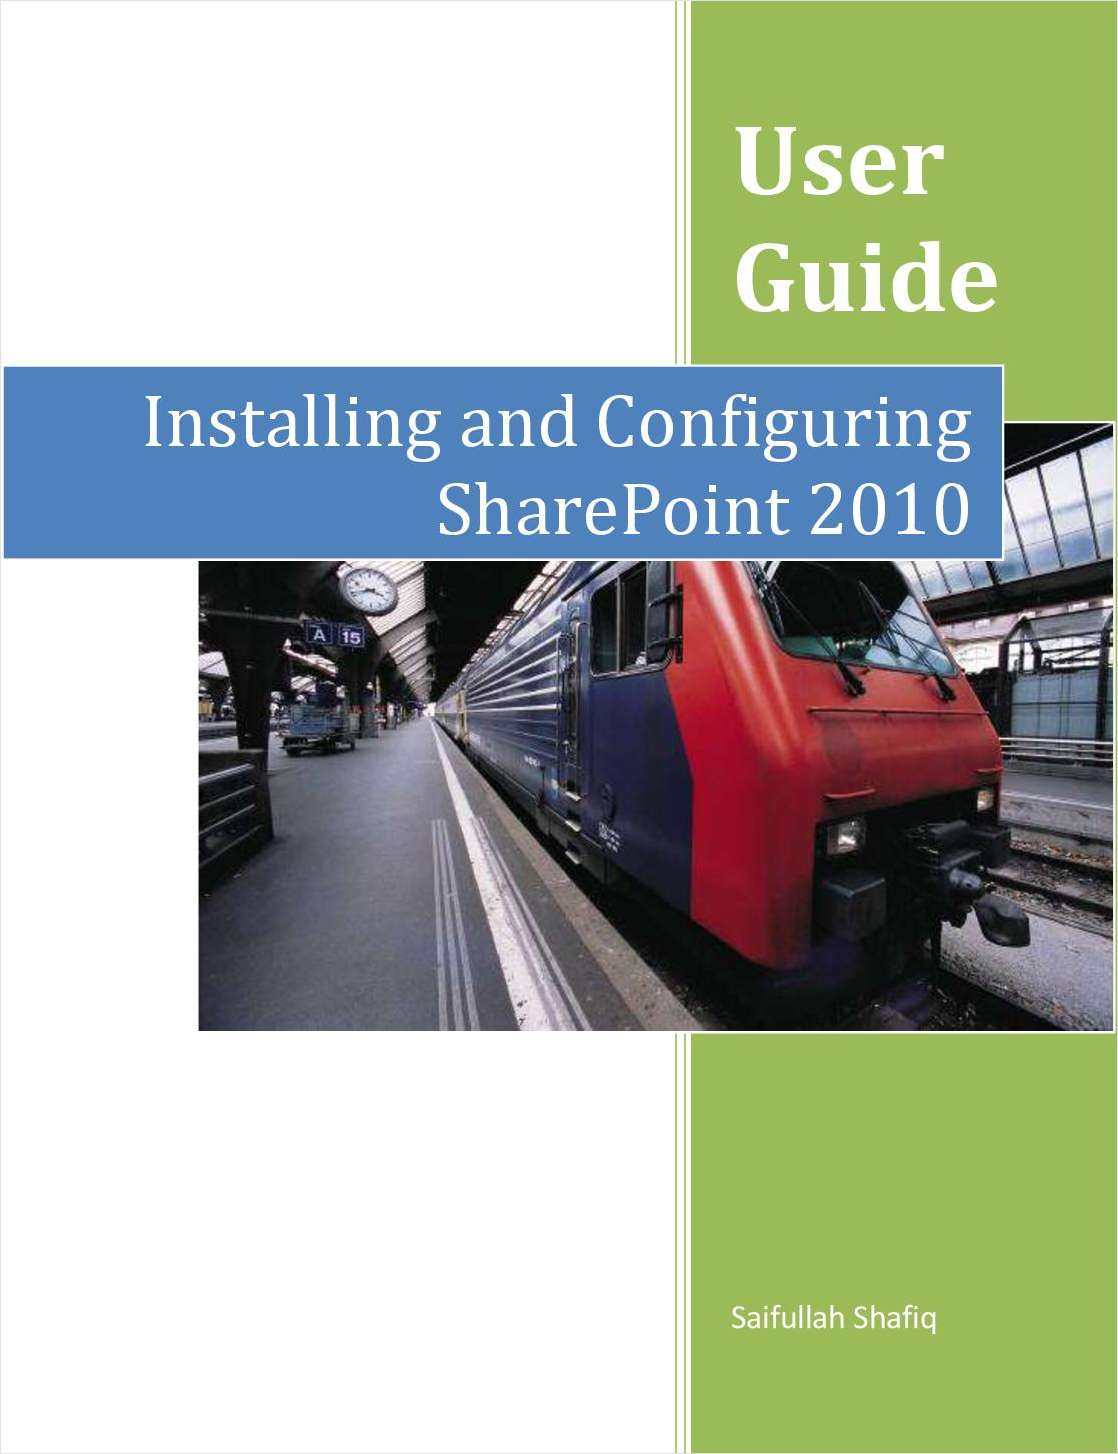 Installing and Configuring SharePoint 2010 -- Free 125 Page User Guide